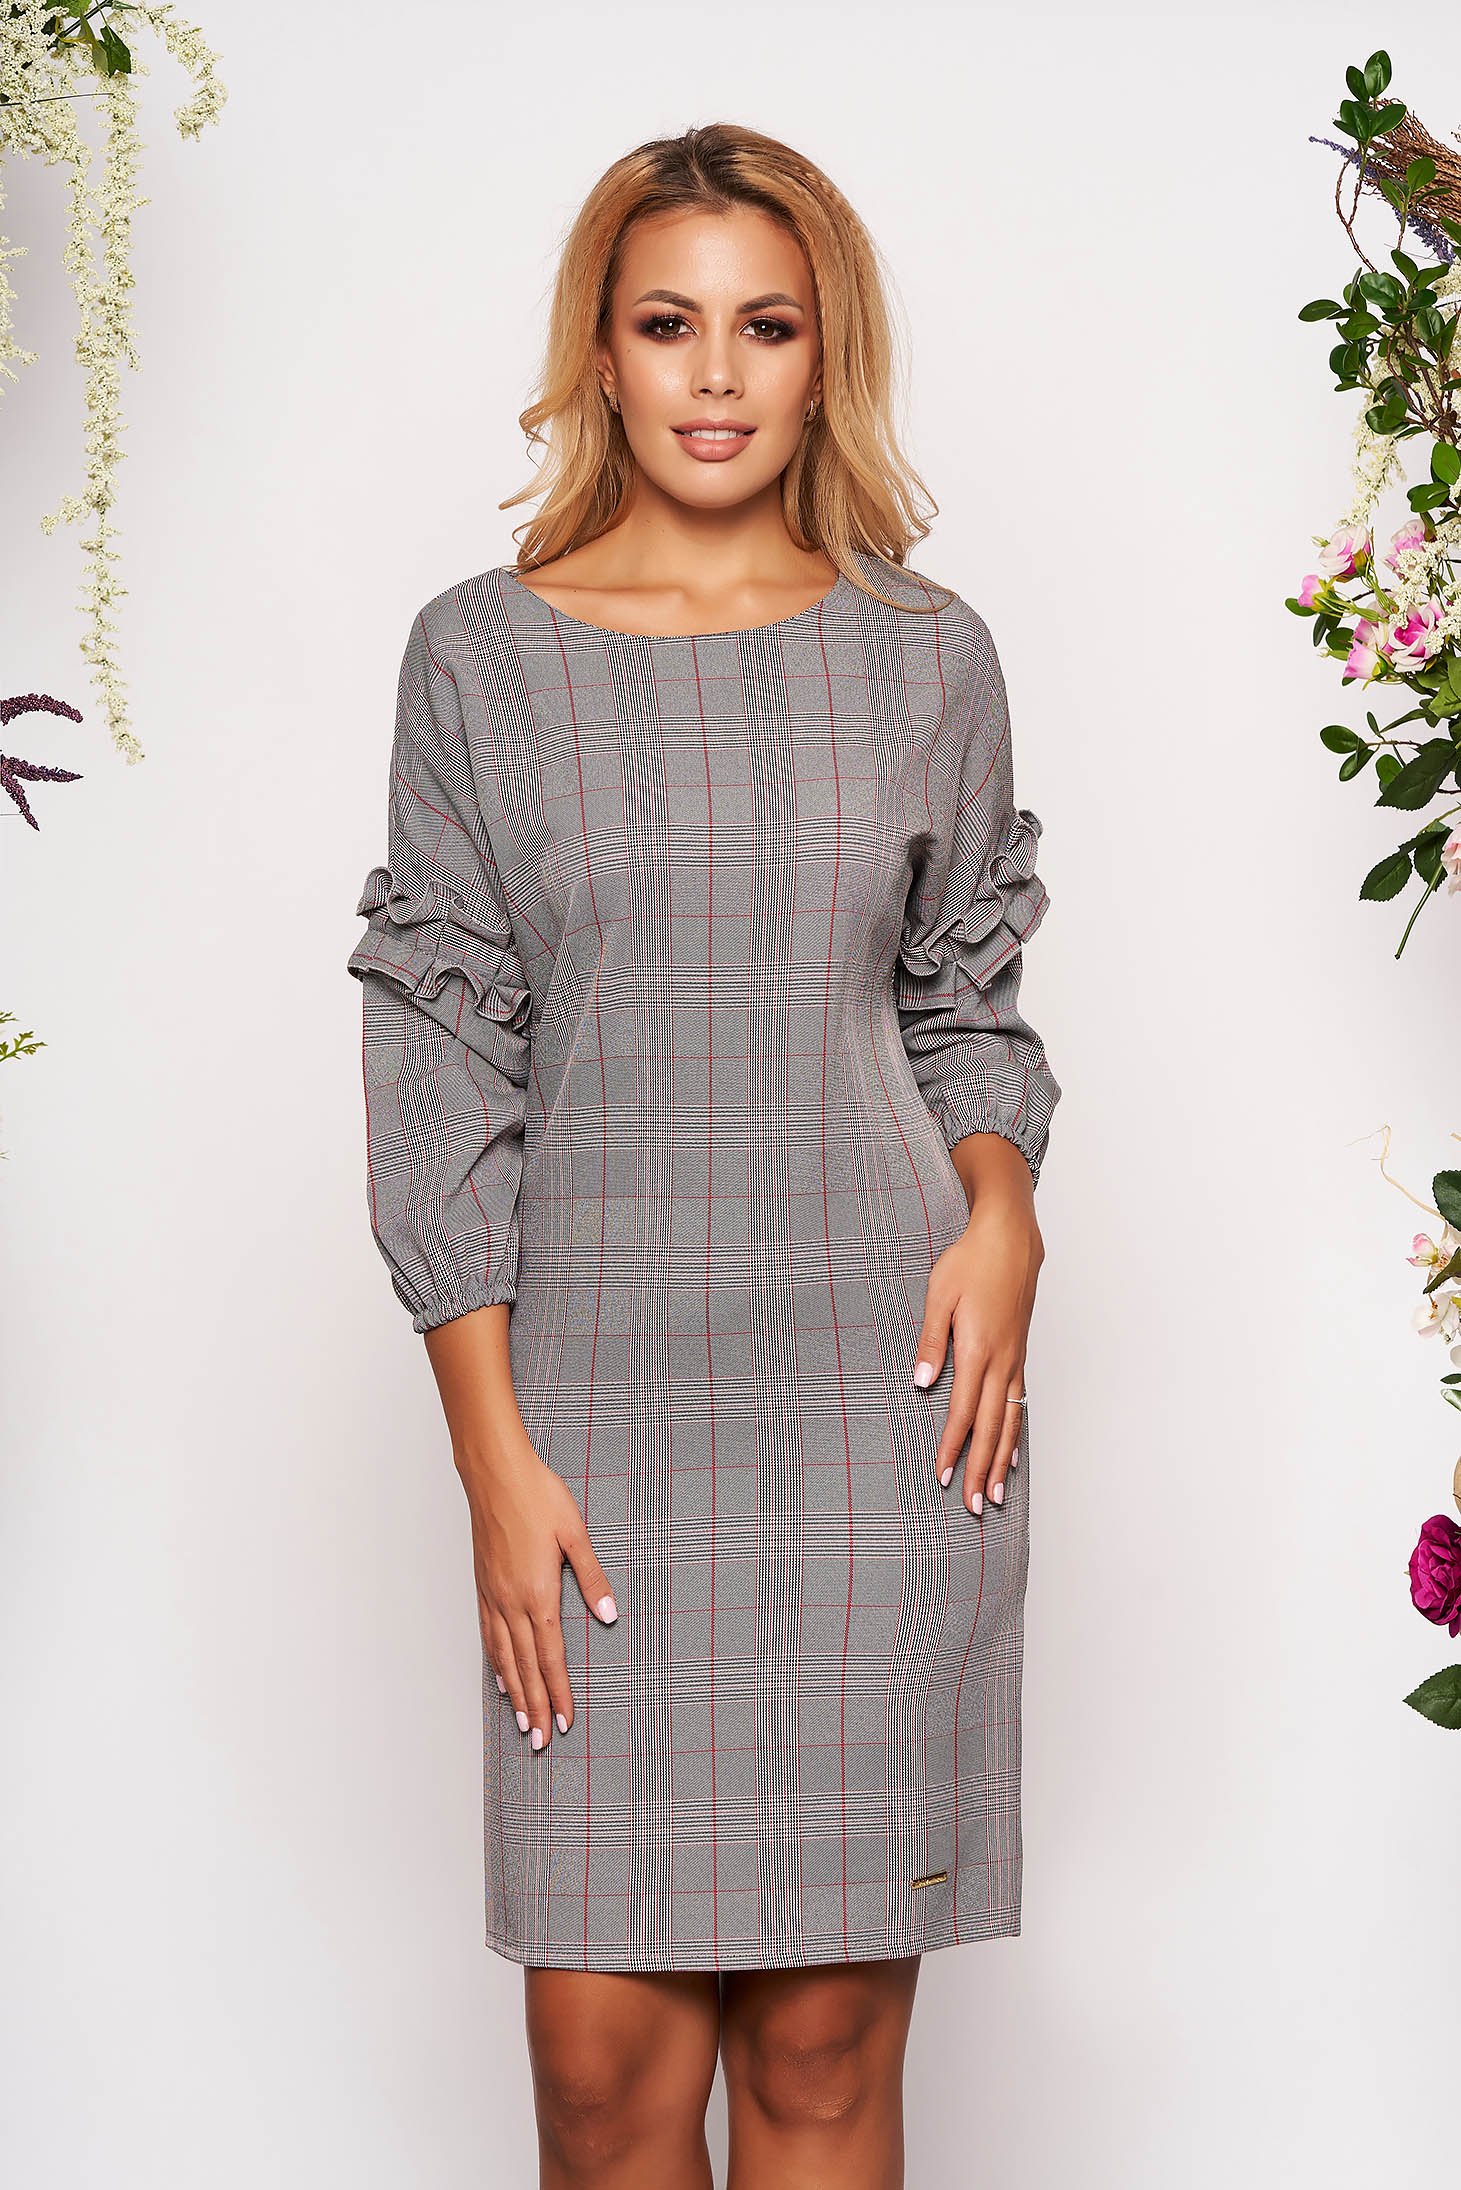 Dress grey short cut elegant straight cloth with chequers with ruffled sleeves